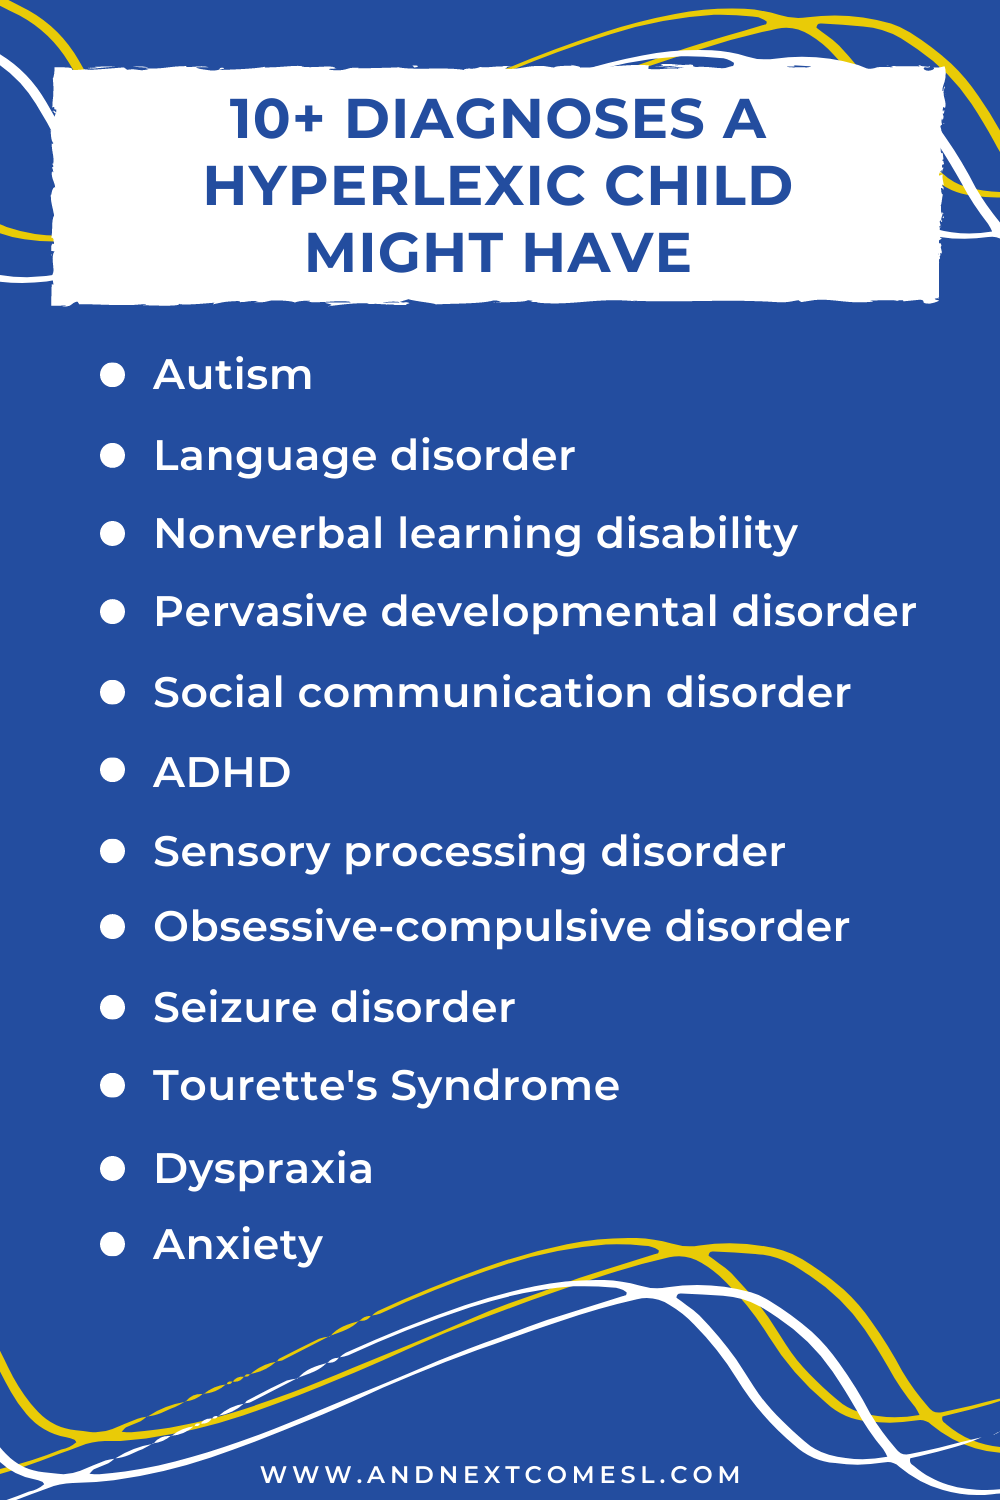 A list of diagnoses or conditions that hyperlexic kids can also be identified with